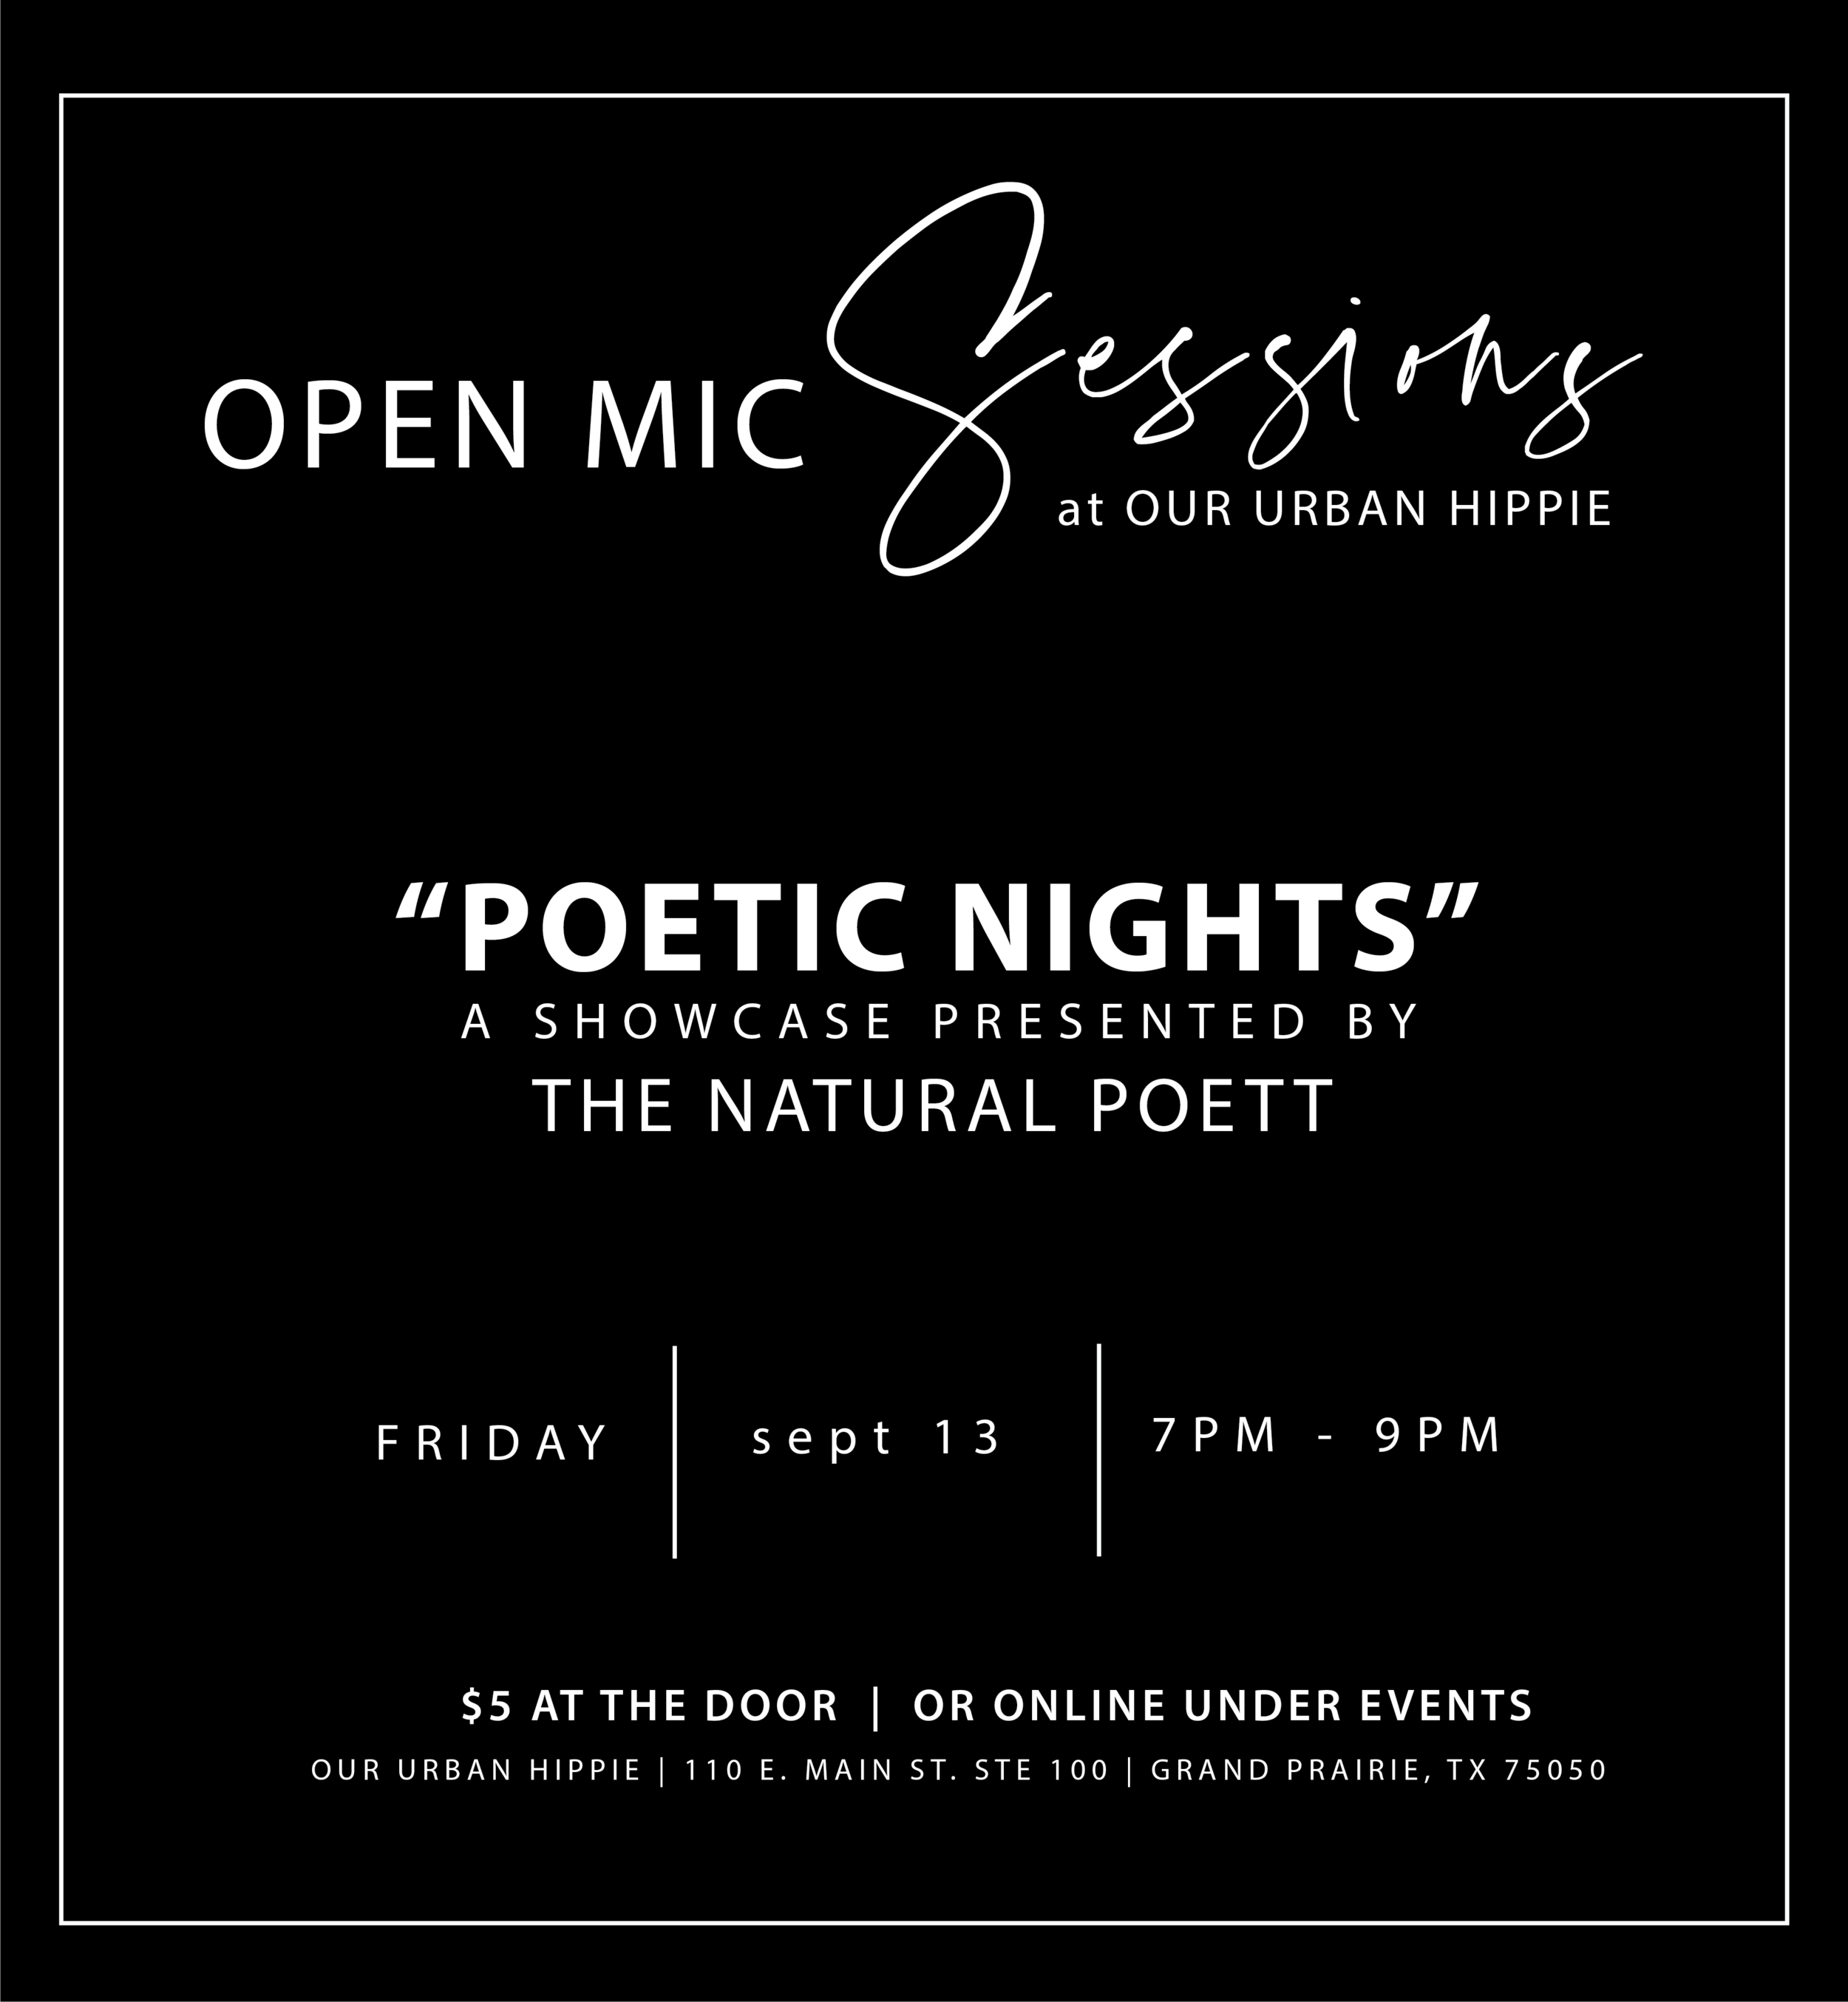 OpenMicSessions-15.png